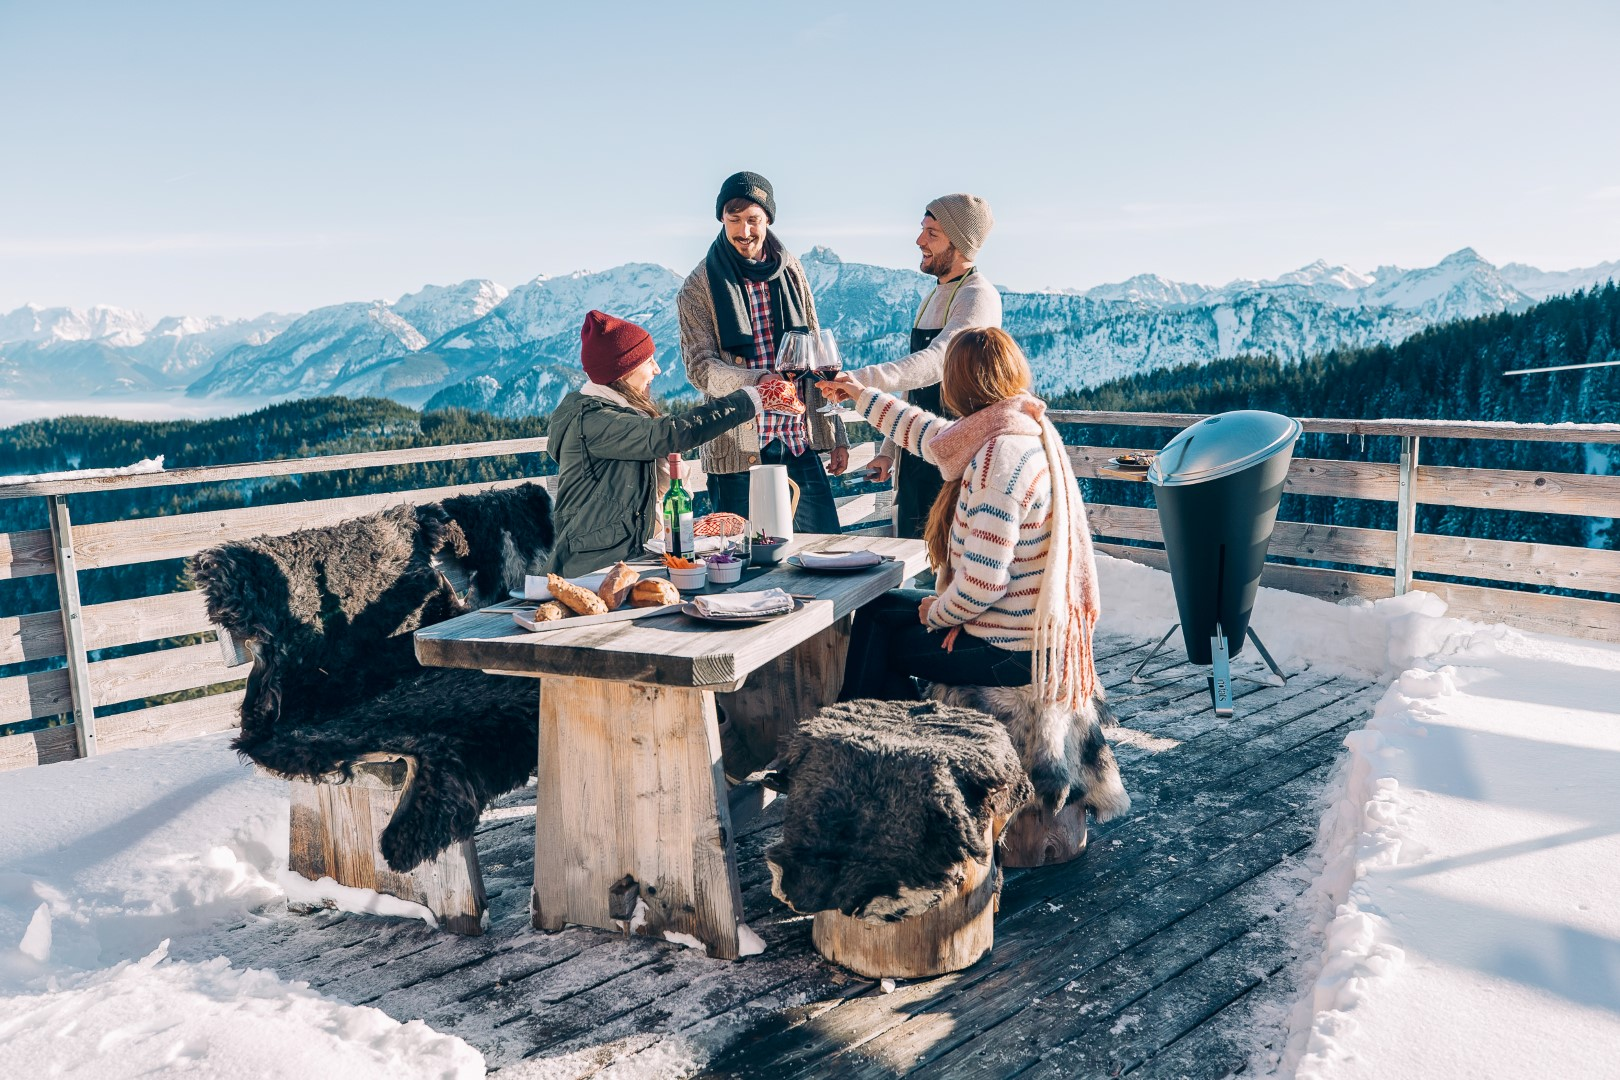 group of people drinking outside in snow